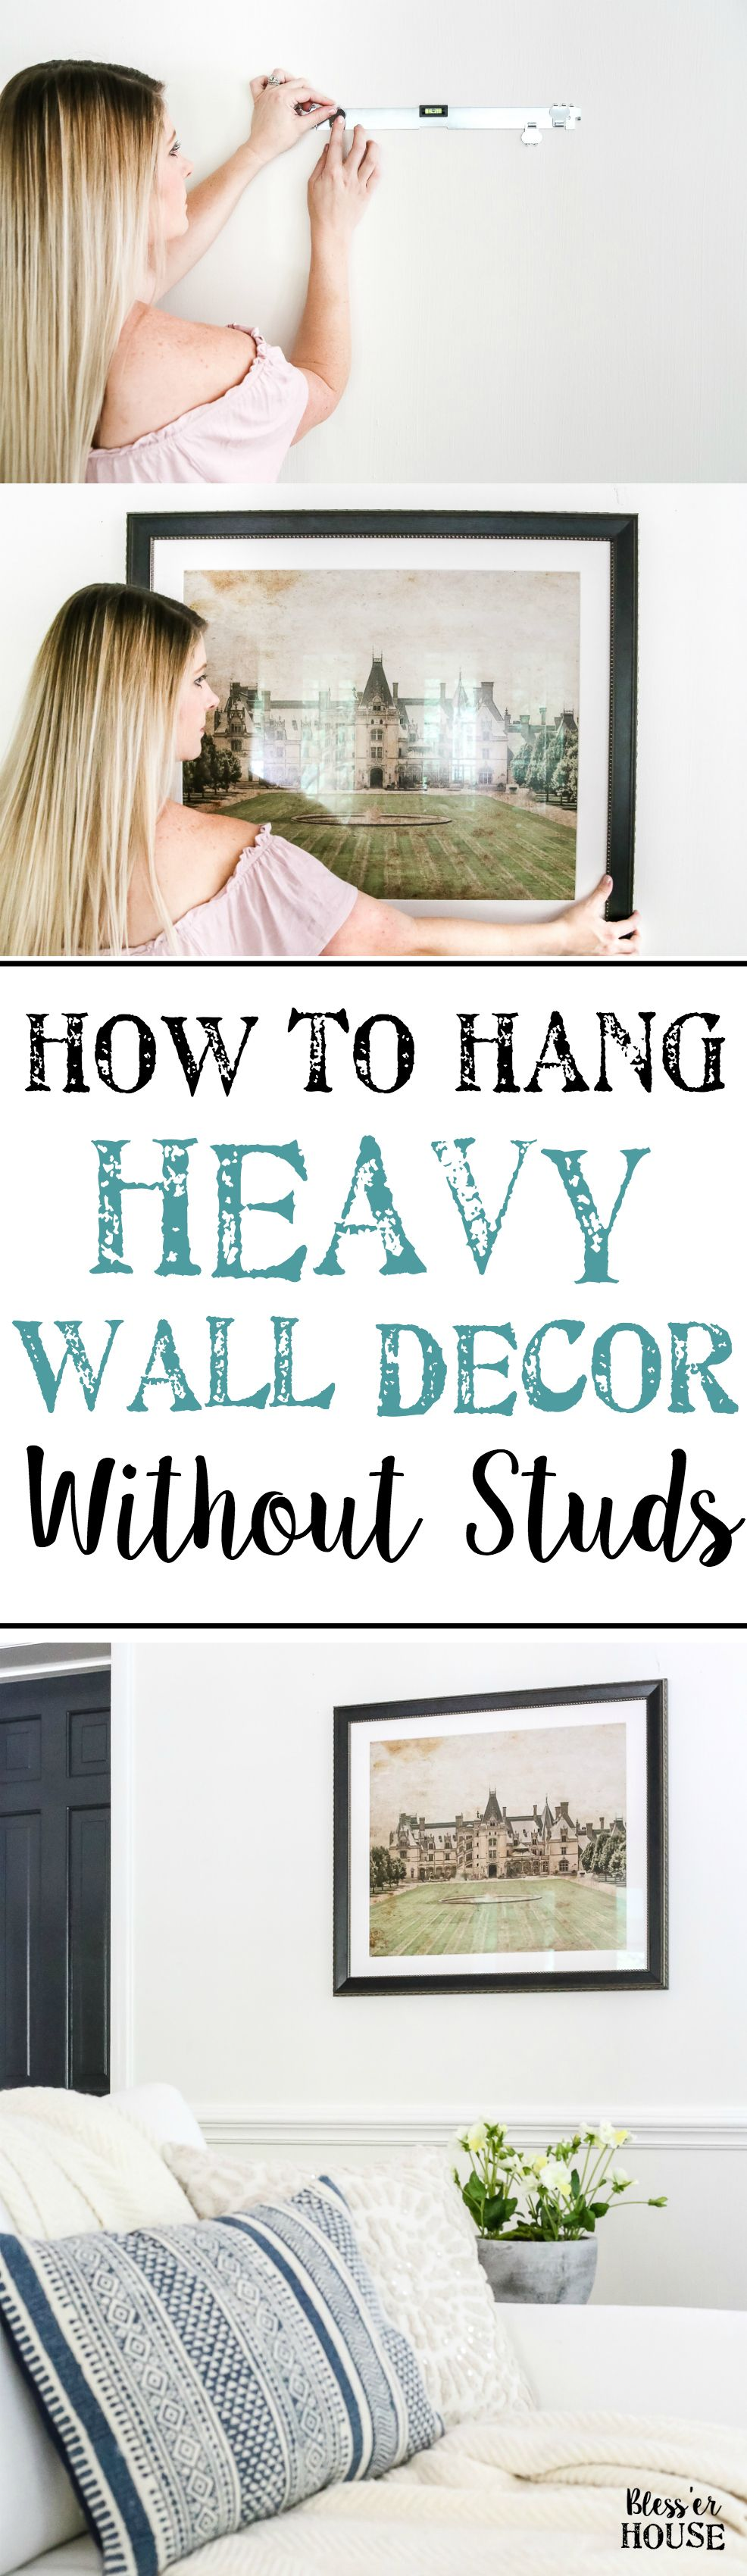 Hanging Heavy Pictures : hanging, heavy, pictures, Heavy, Decor, Without, Studs, Frames, Wall,, Hanging, Pictures,, Apartment, Decorating